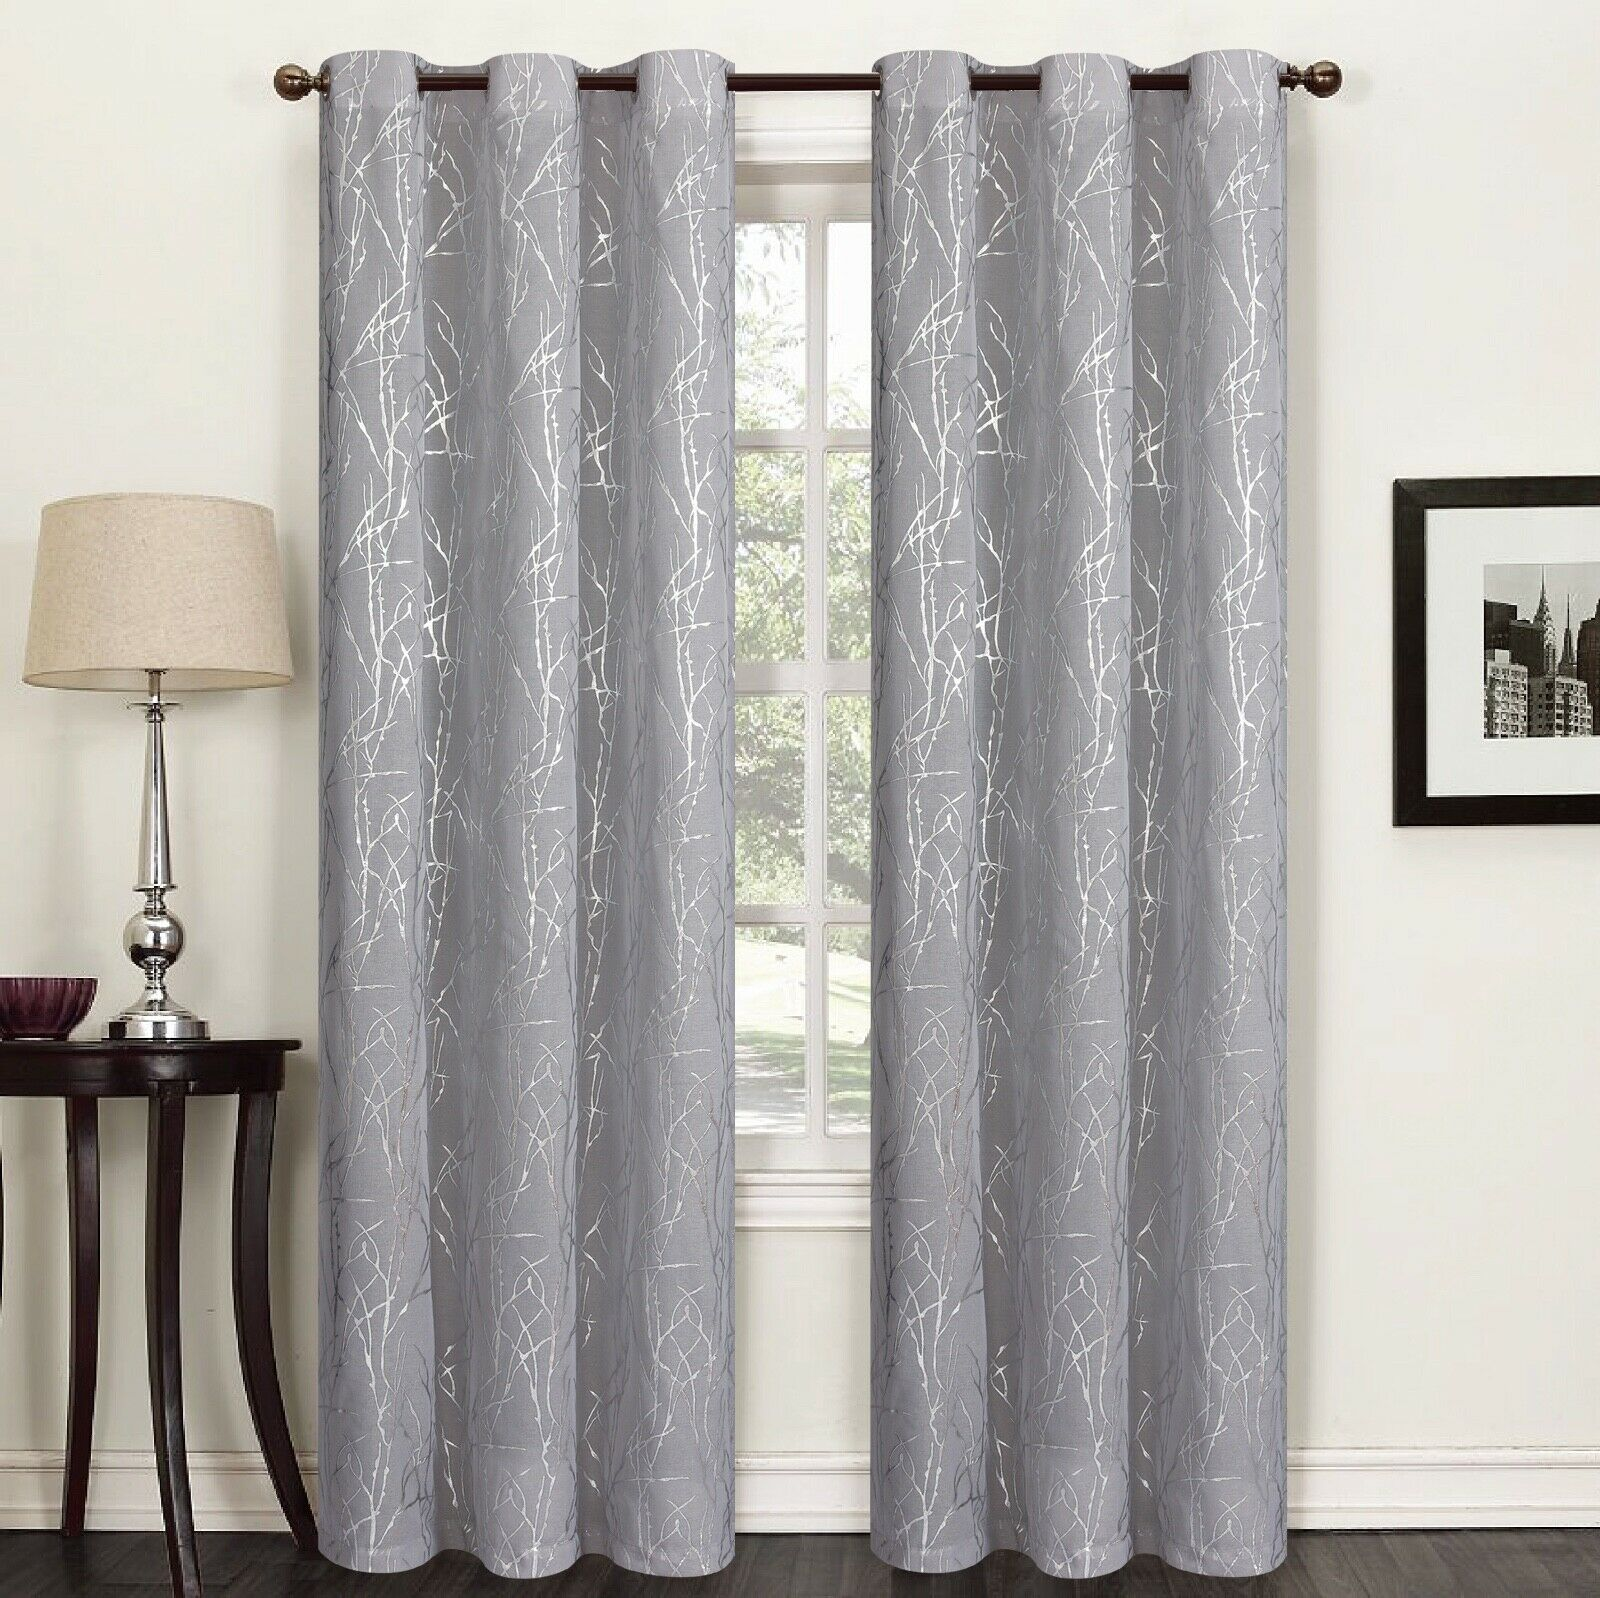 "Flora 84"" Long Faux Silk Window Curtain Grommets Panels Set of 2 - Silver"